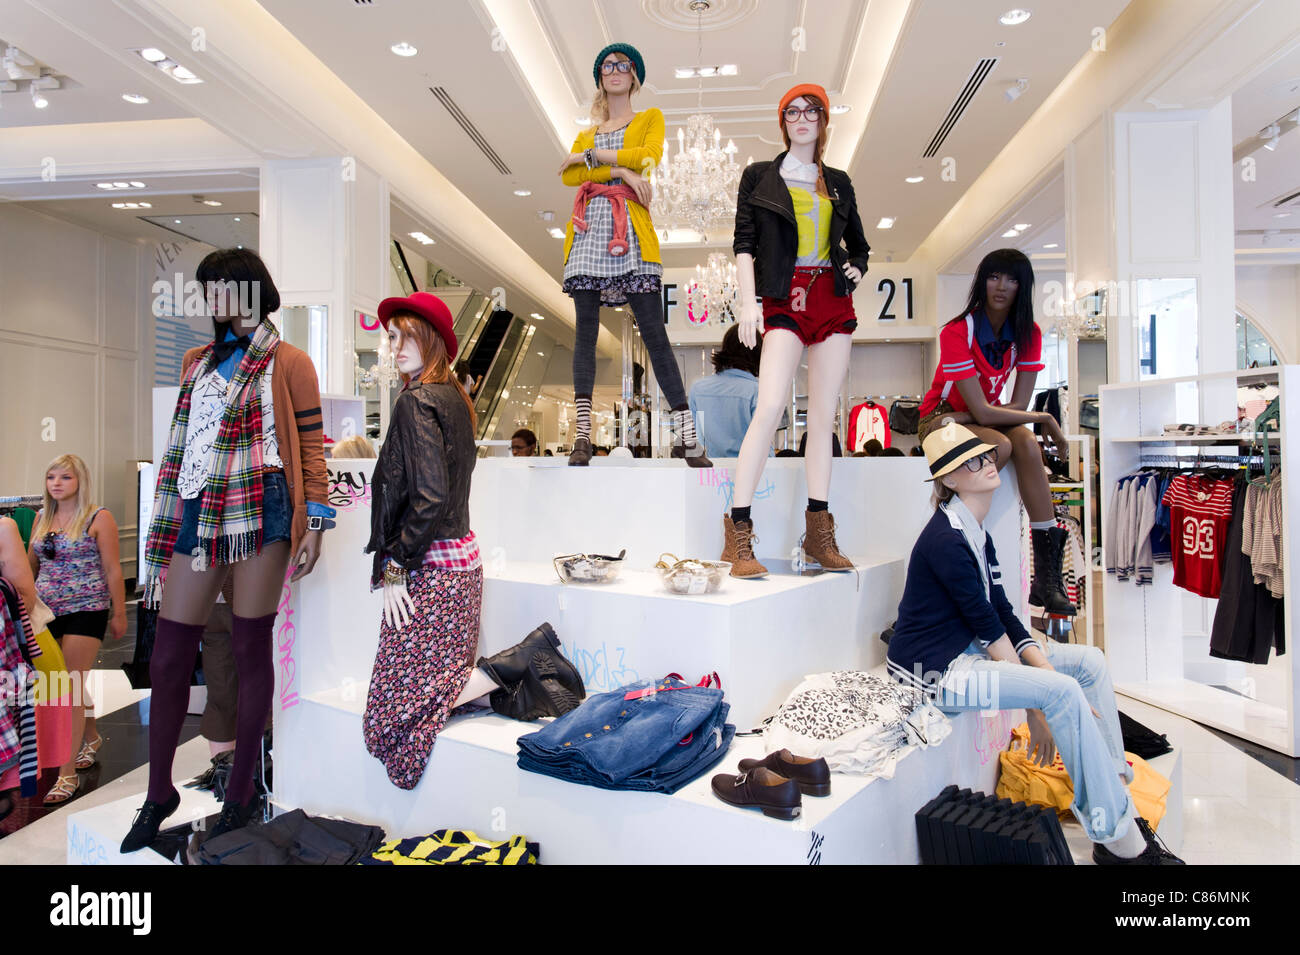 Store En Stock Mannequins At Forever 21 Clothes Store London England Uk Stock